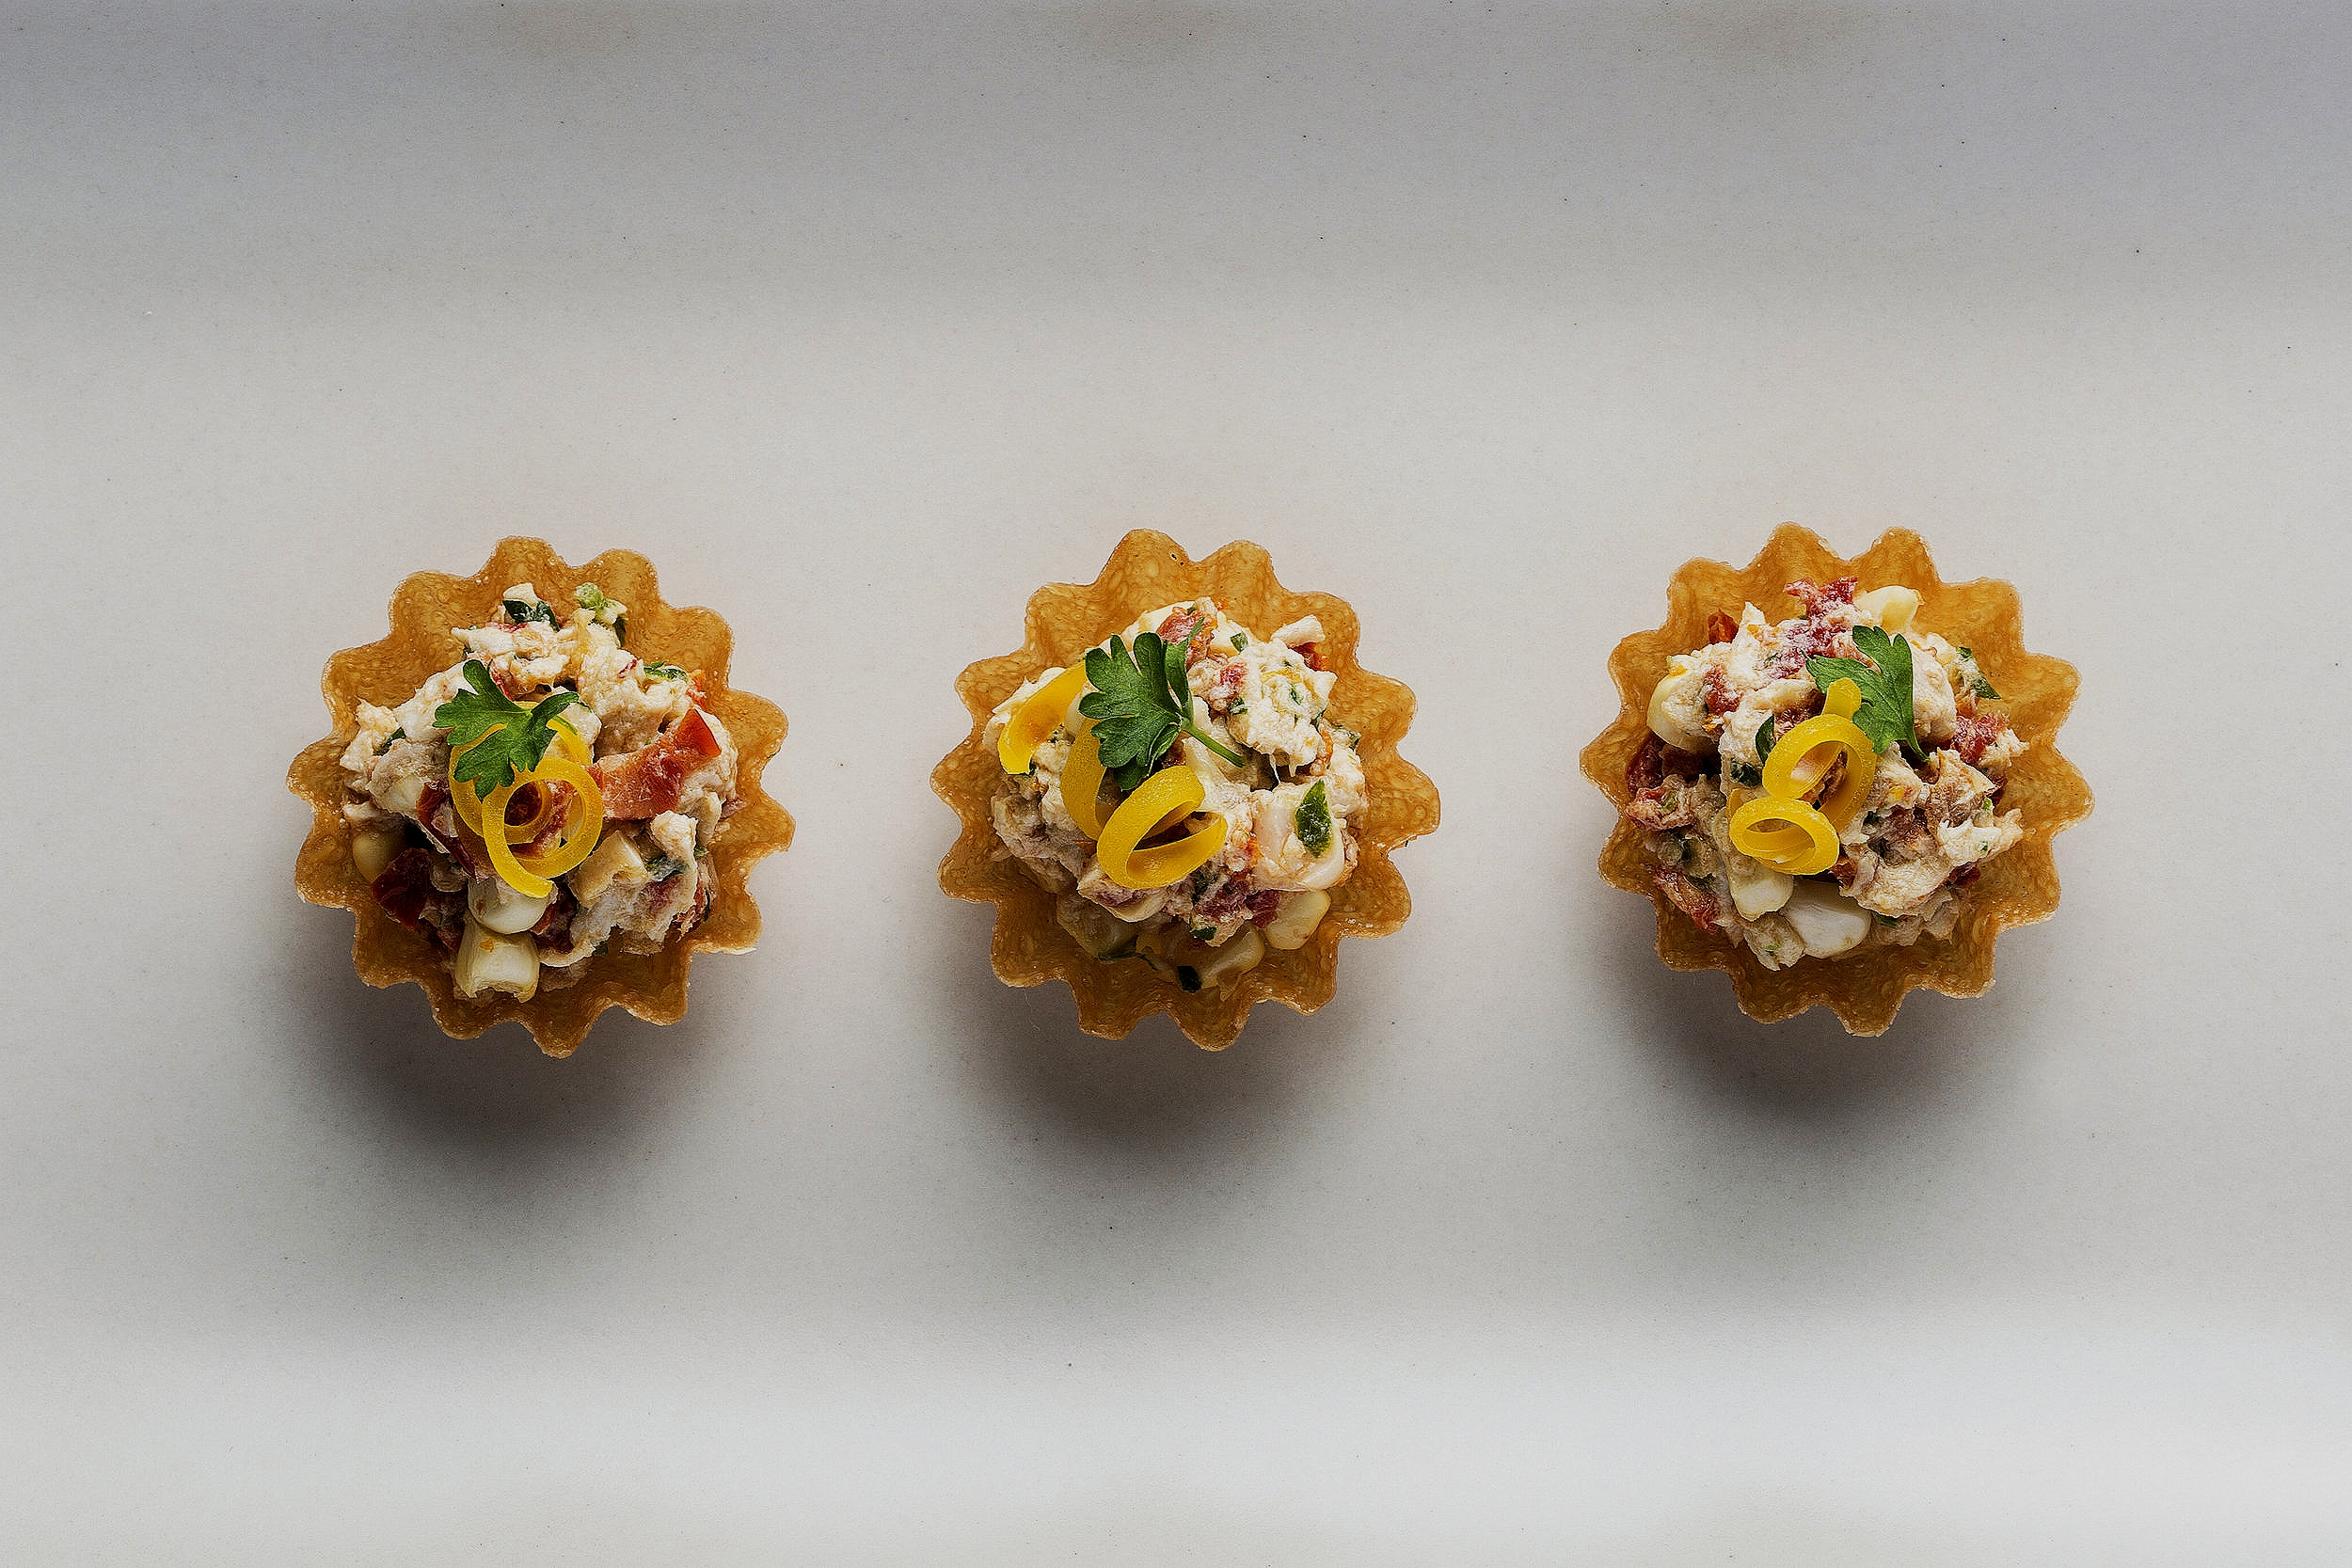 Tart with chicken, sun-dried tomato, lemon, creme fraiche, corn, and yellow pepper